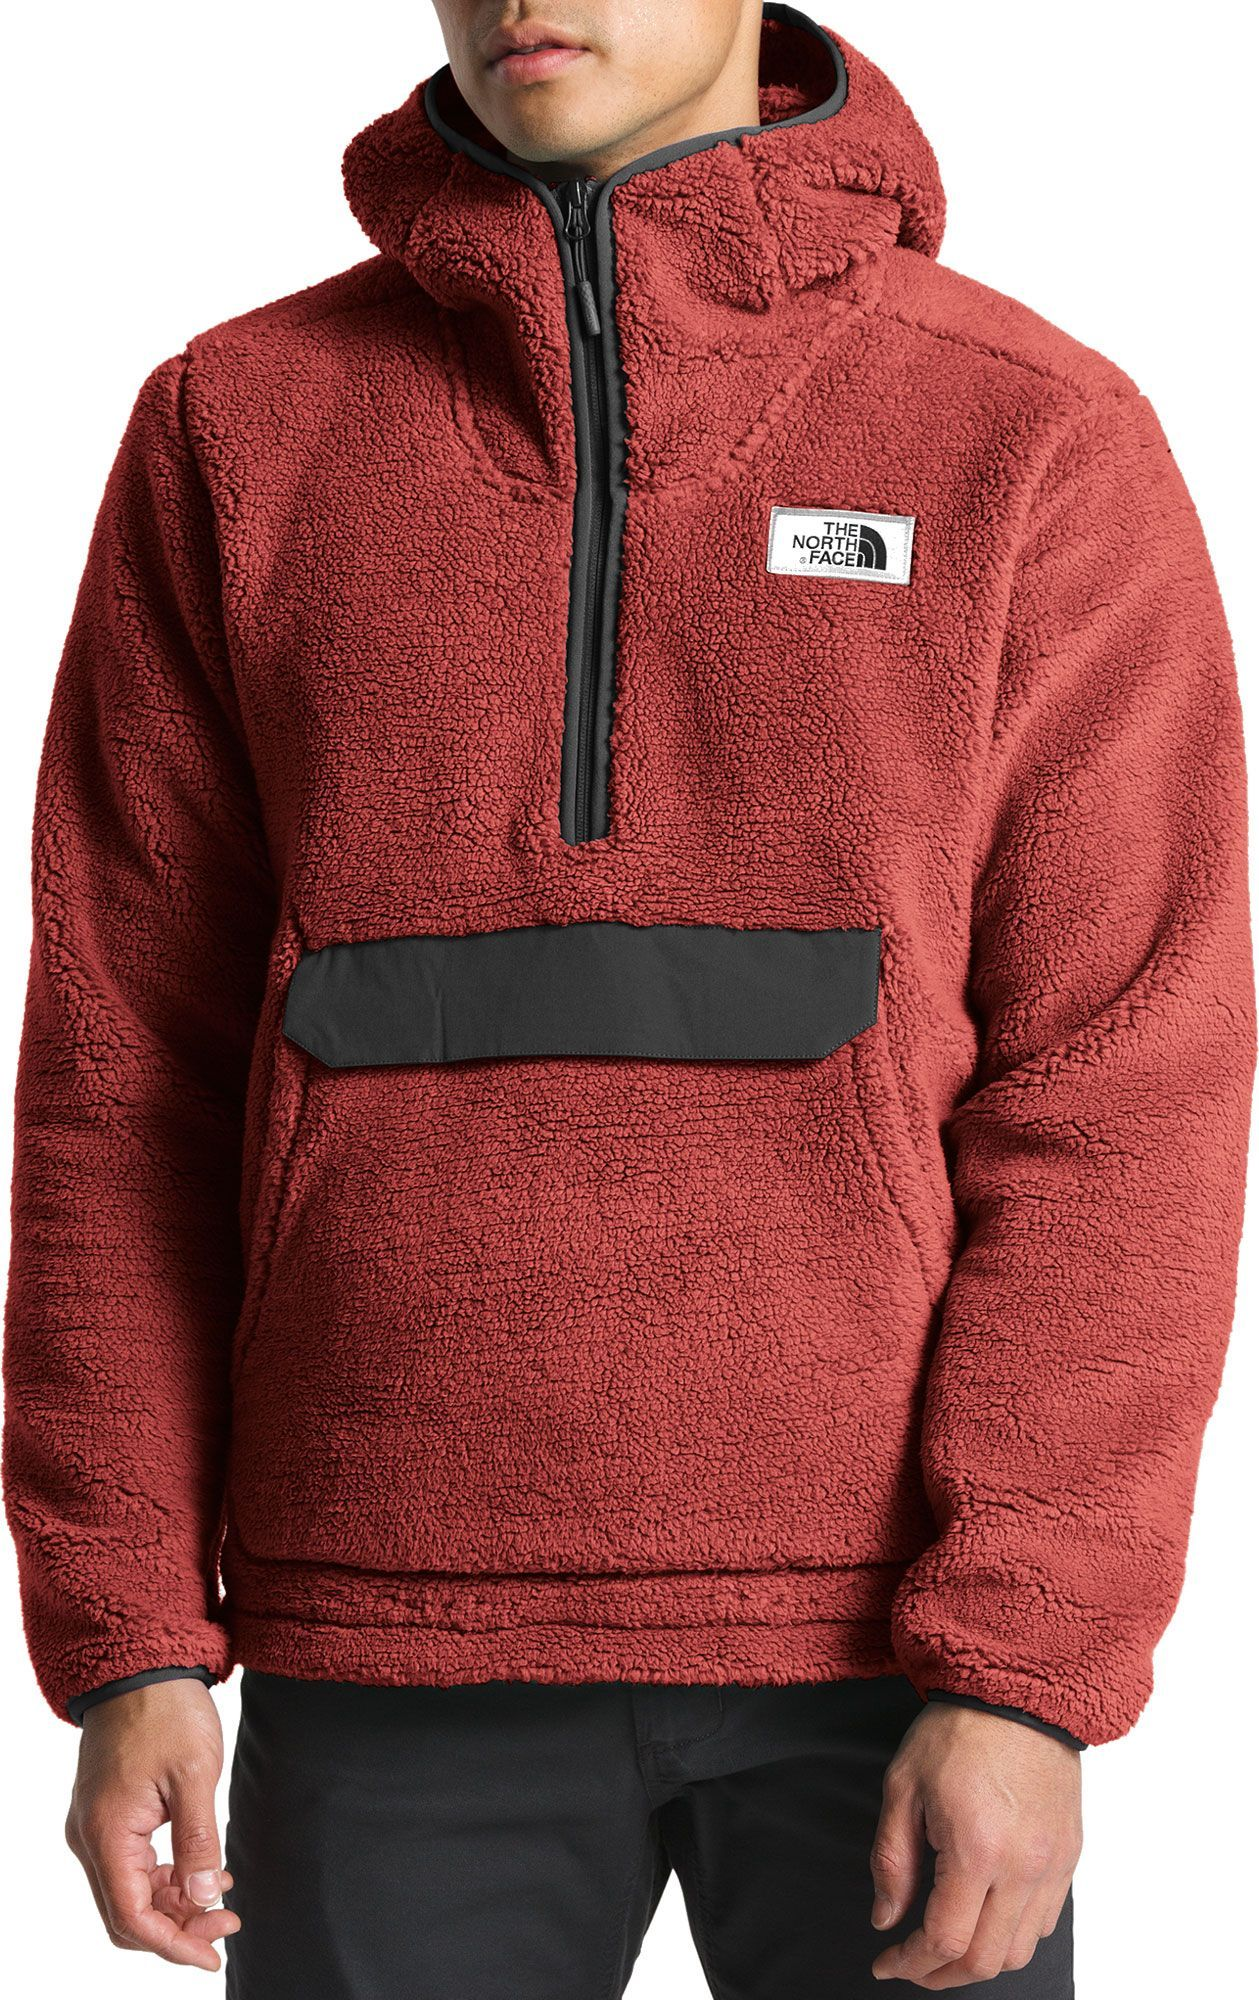 c5e1aee3 The North Face Men's Campshire Hoodie | Products | Hoodies, The ...